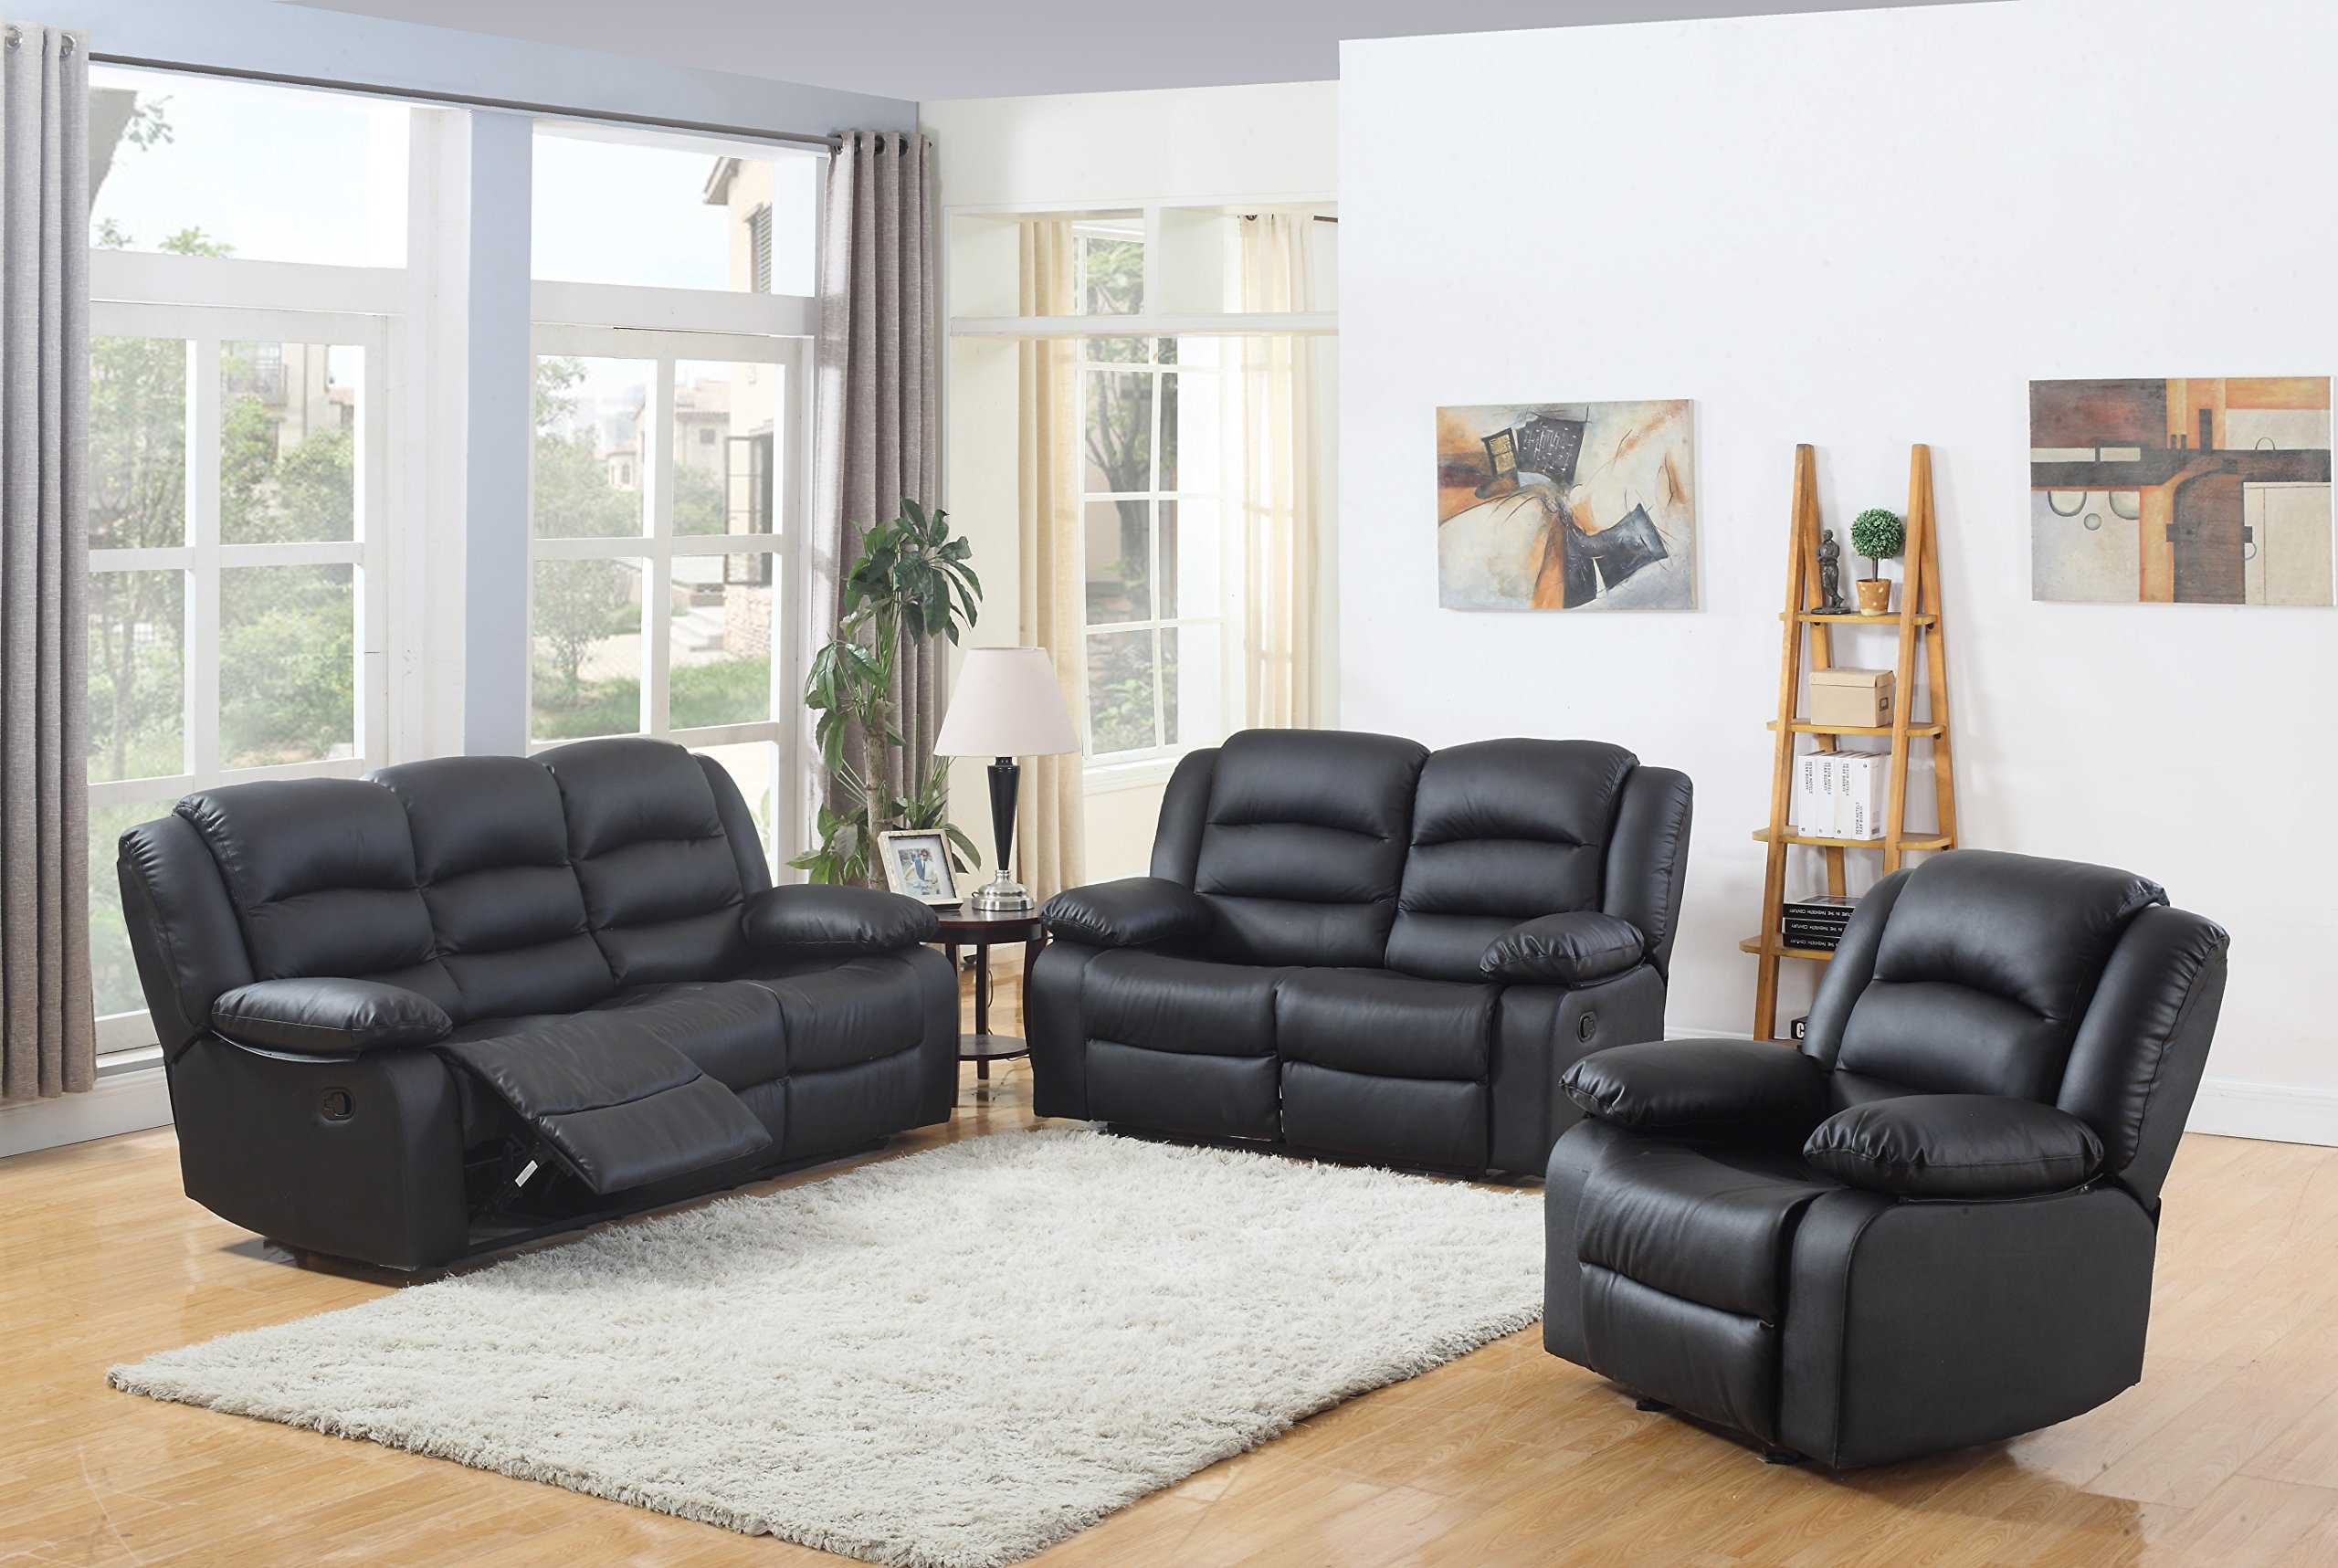 loveseats fabric costco sofas couches sofa sale recliner chaise full cheap lounge and leather sectional furniture sleeper comfort decor of roadshow sectionals relaxation under s size grey reclining with